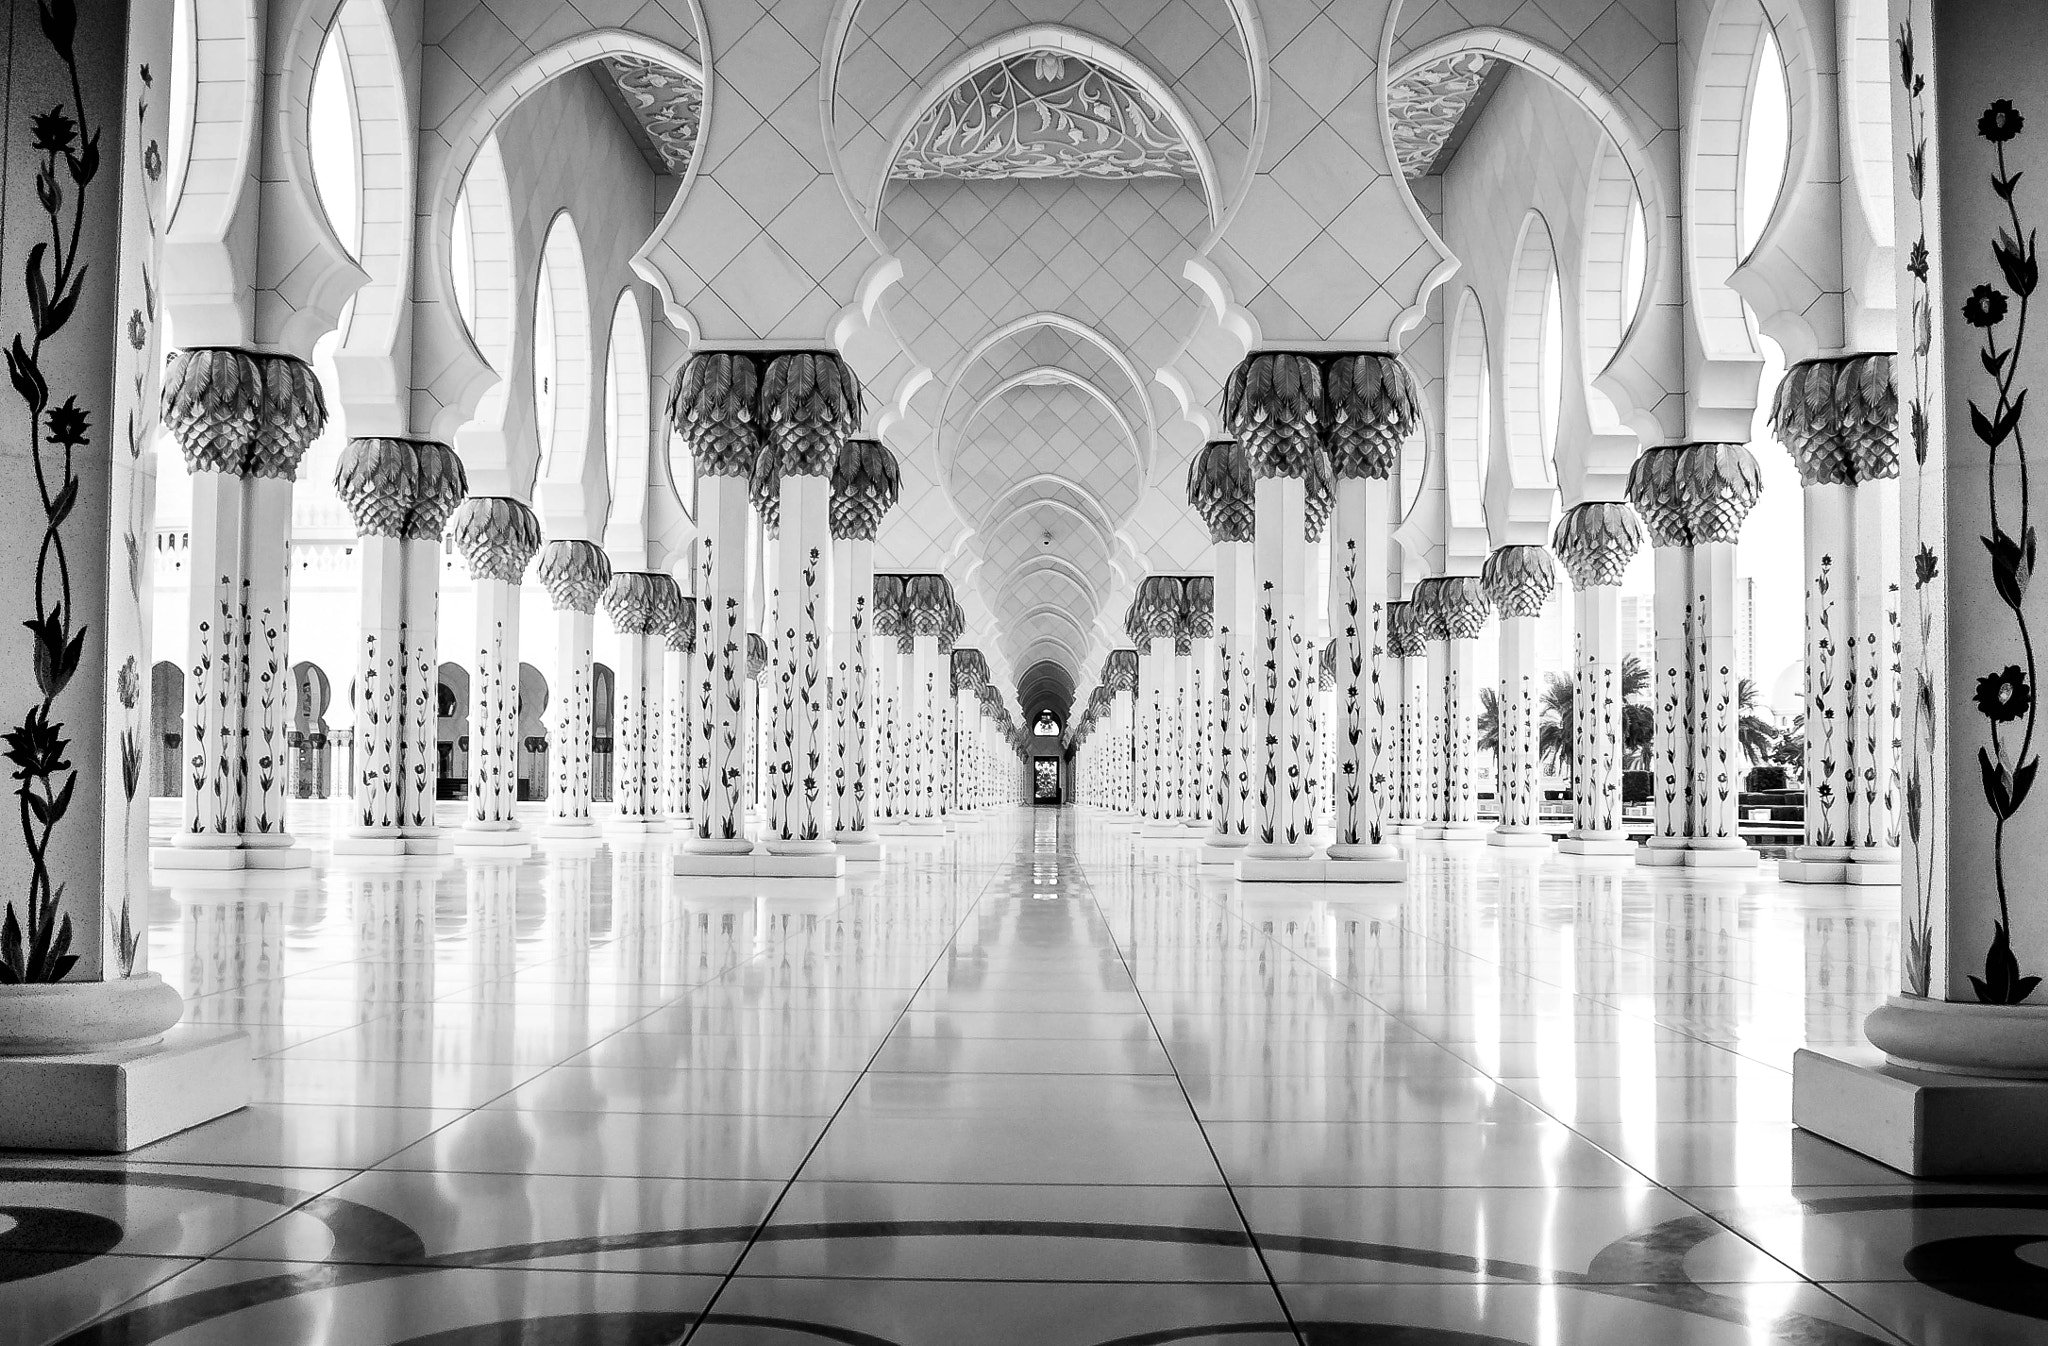 Photograph The Pillars - Grand Mosque, Abu Dhabi by julian john on 500px